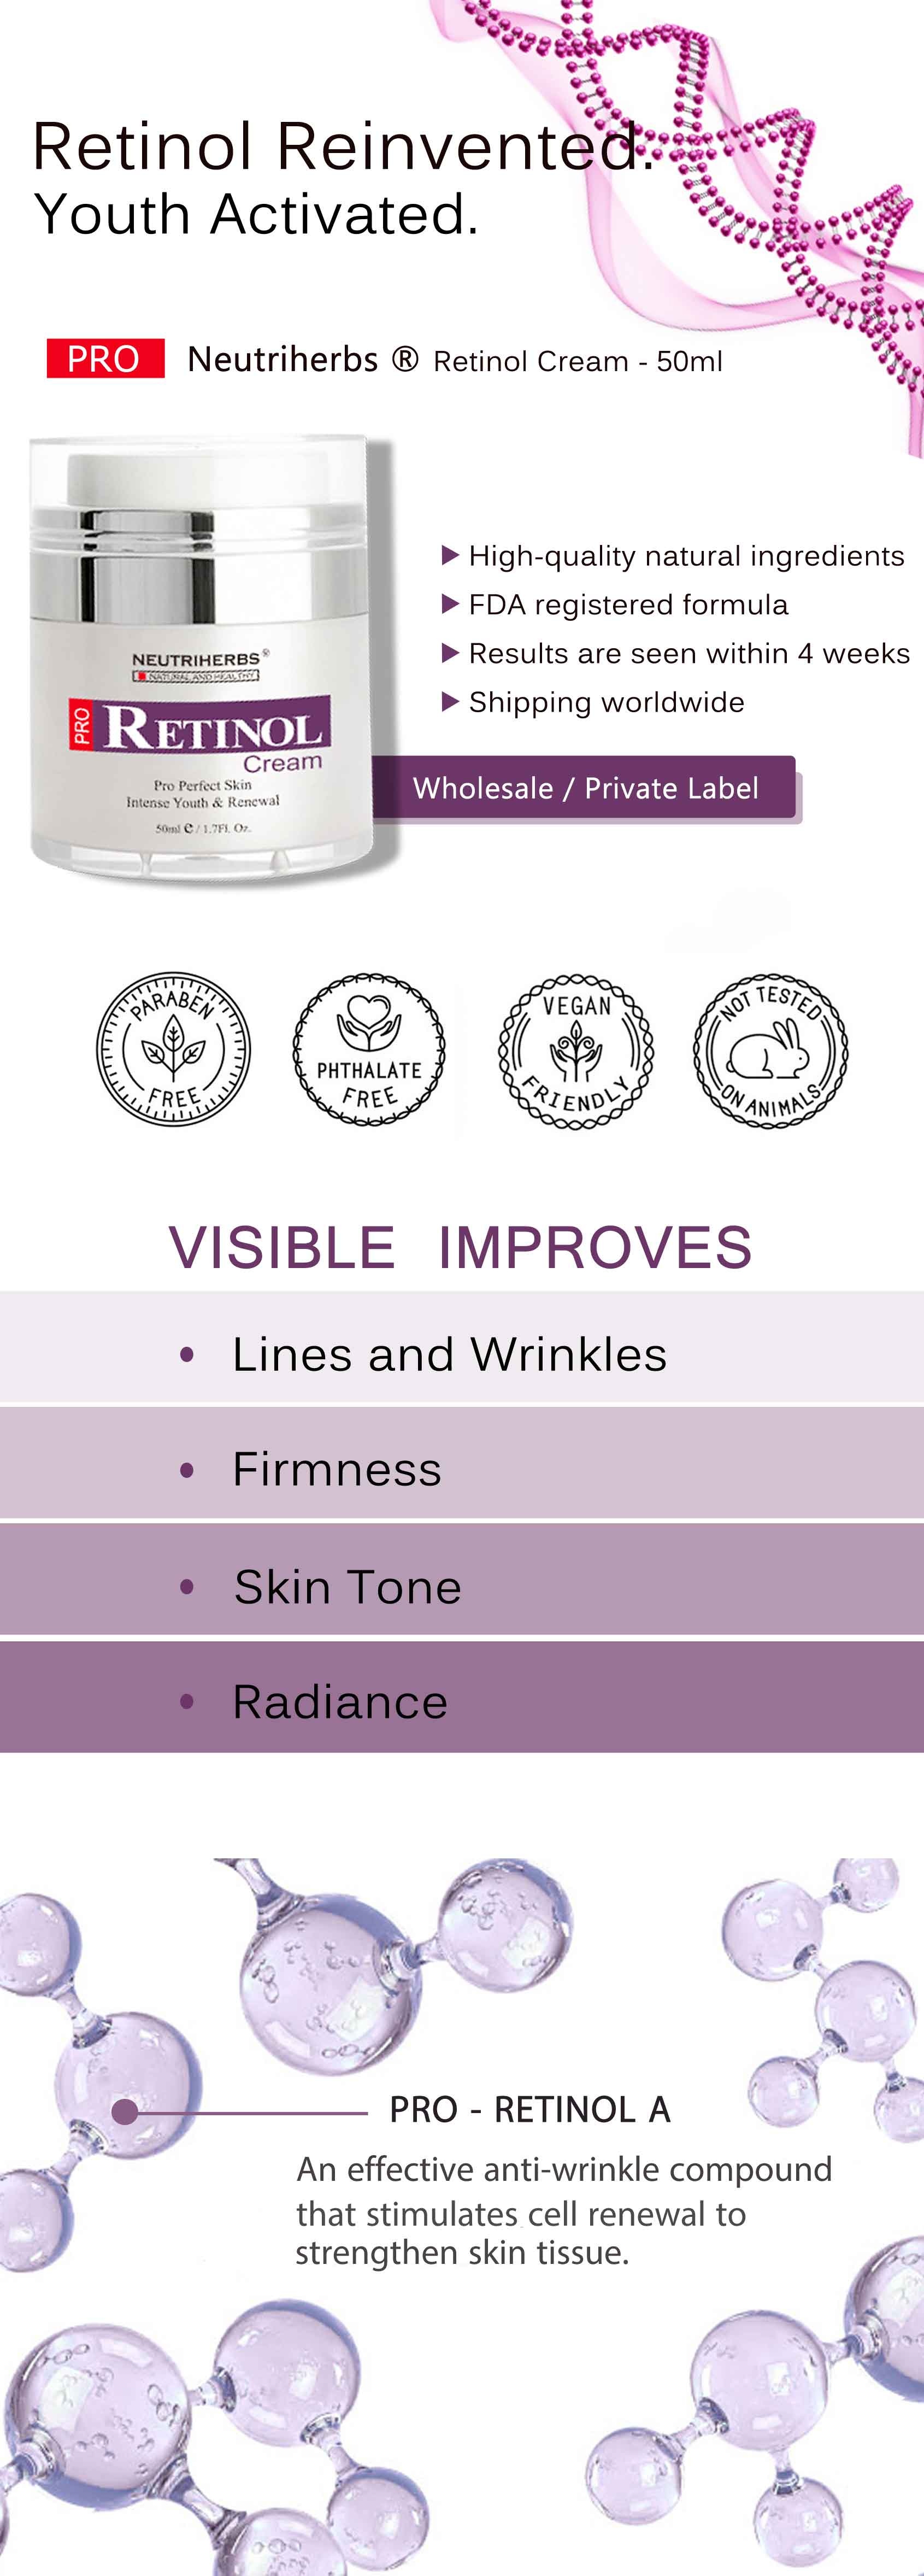 retinol cream anti aging anti wrinkle wholesale private label